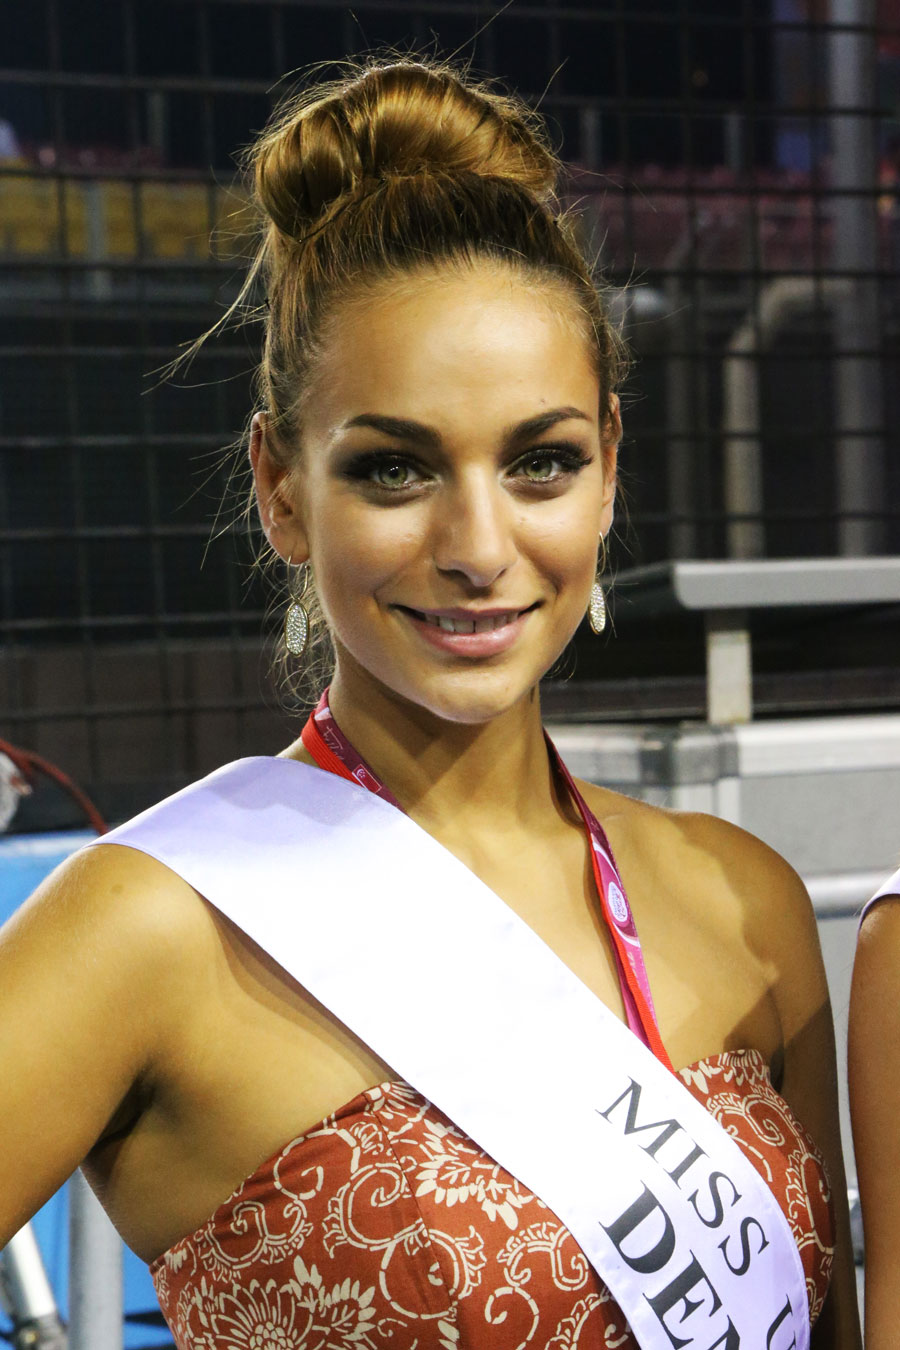 A Miss Universe candidate in the pit lane